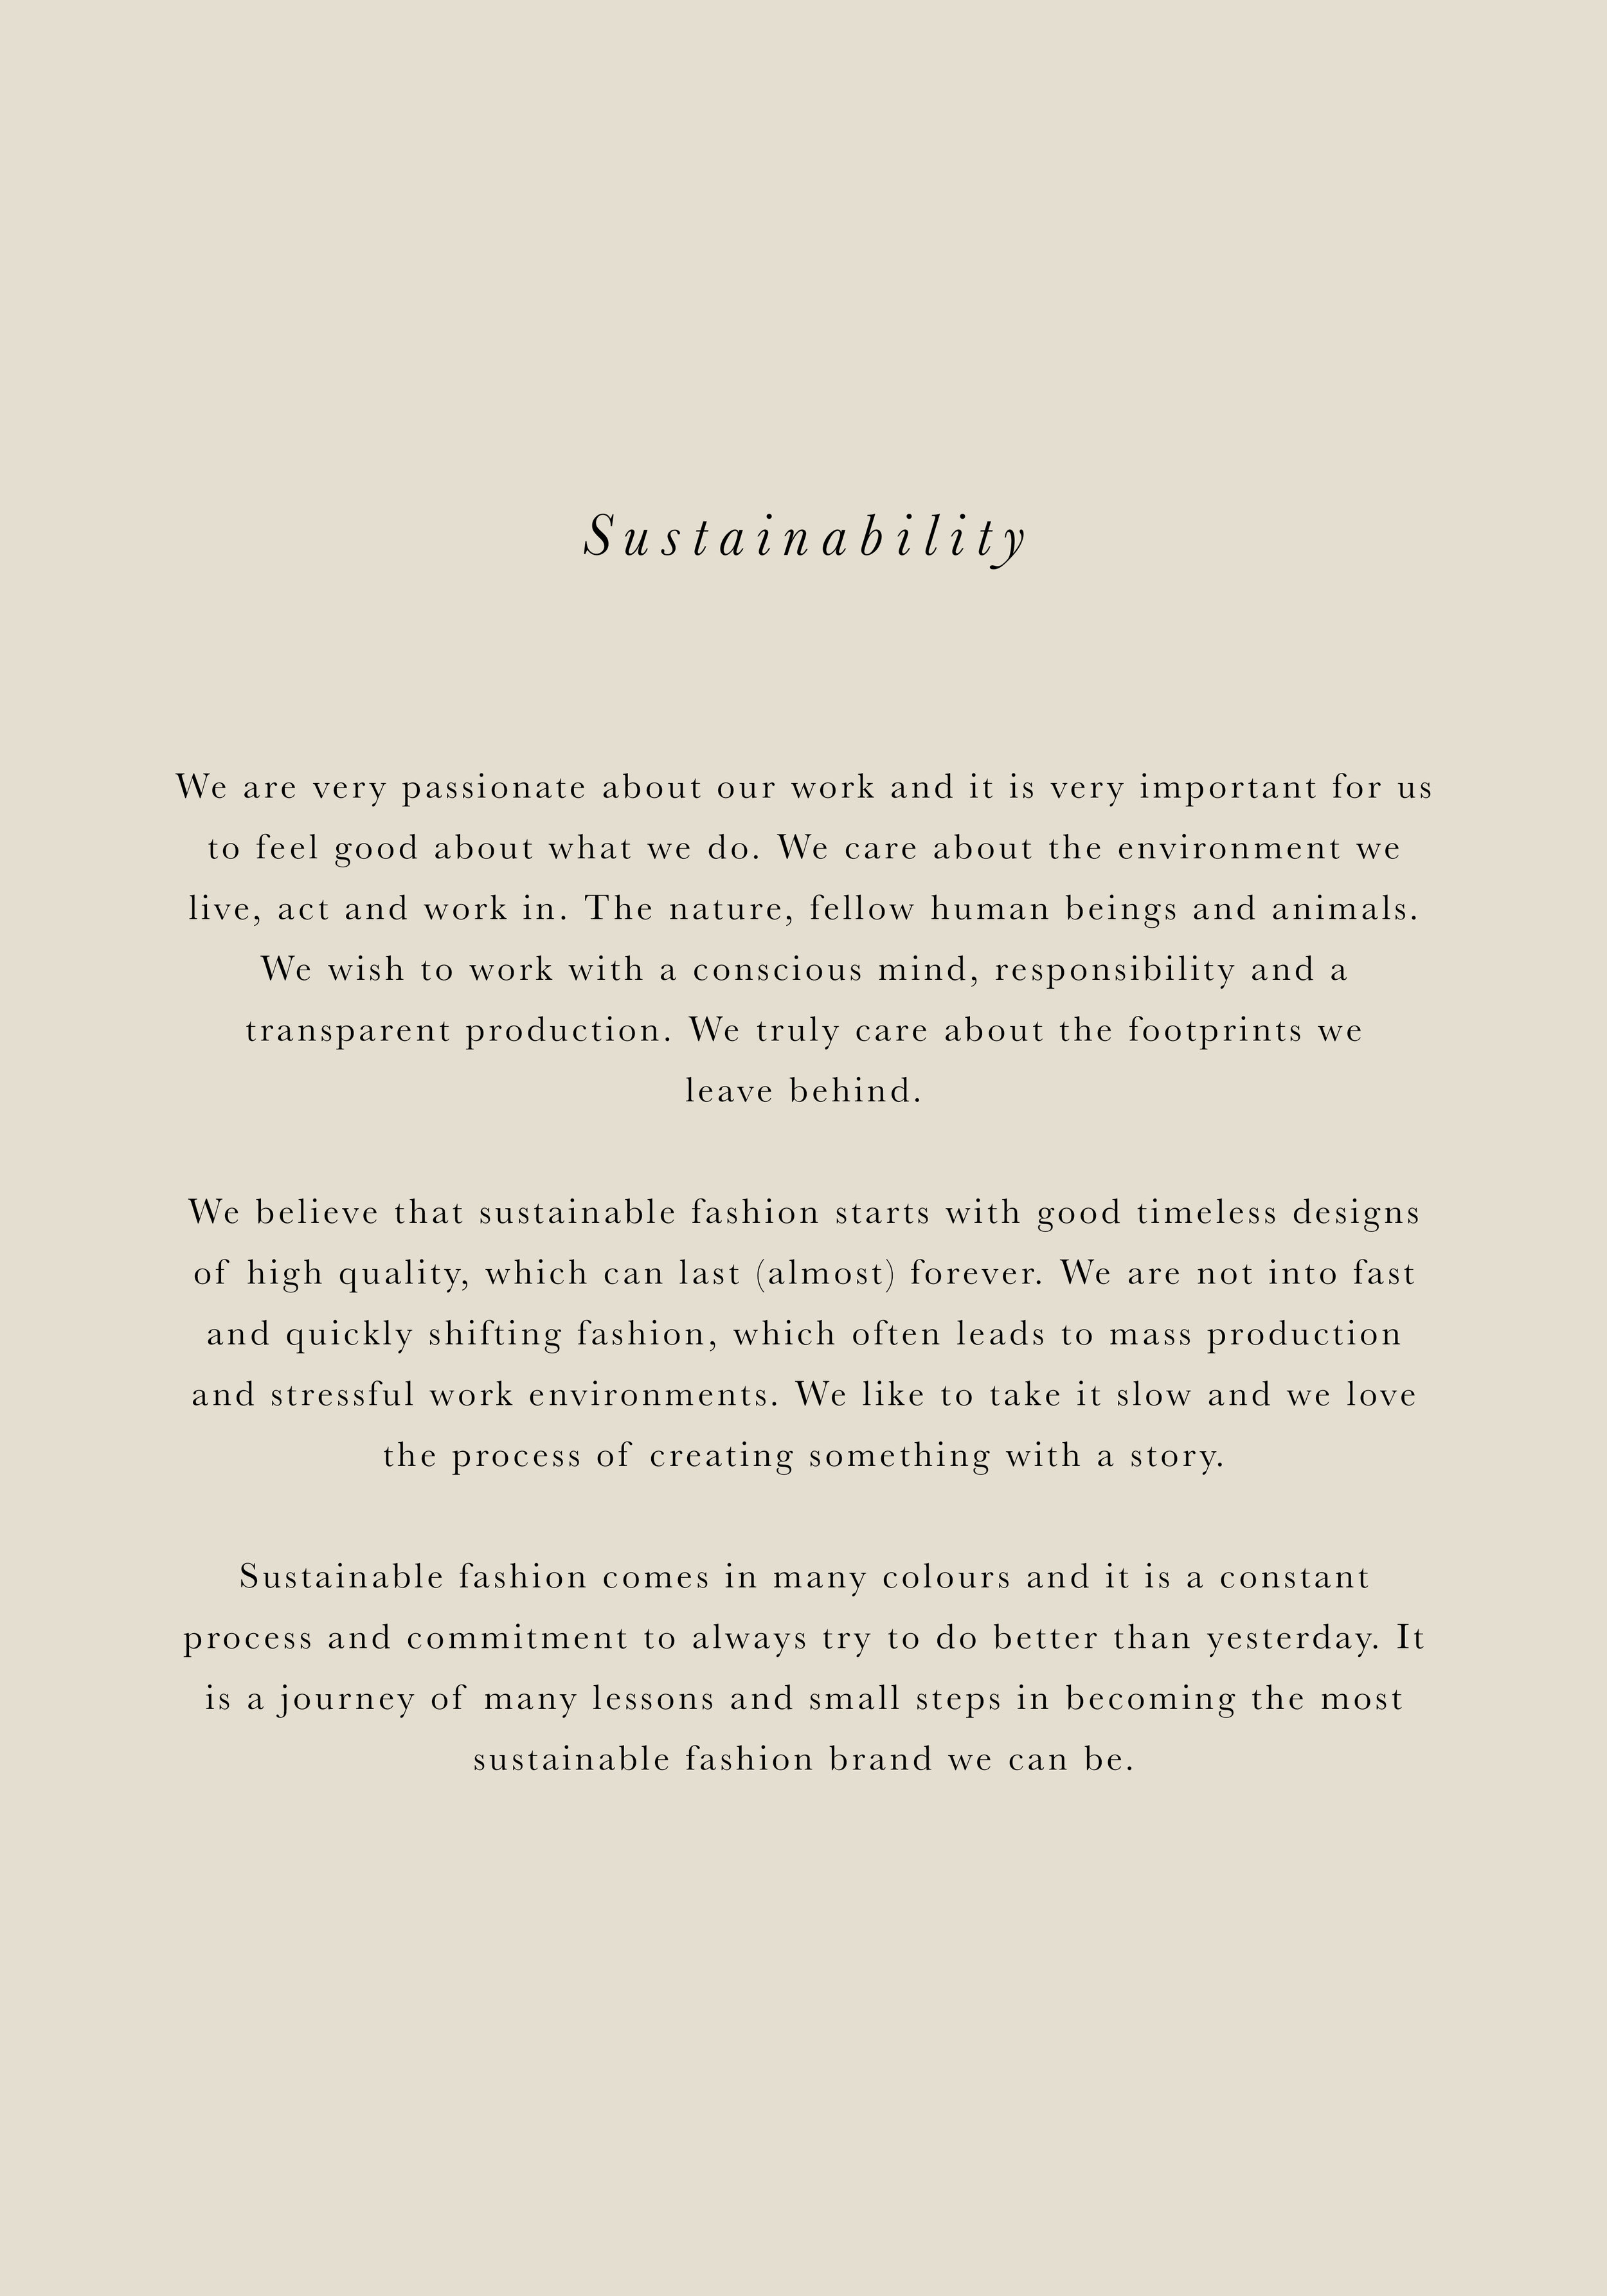 Skall Studio Sustainability